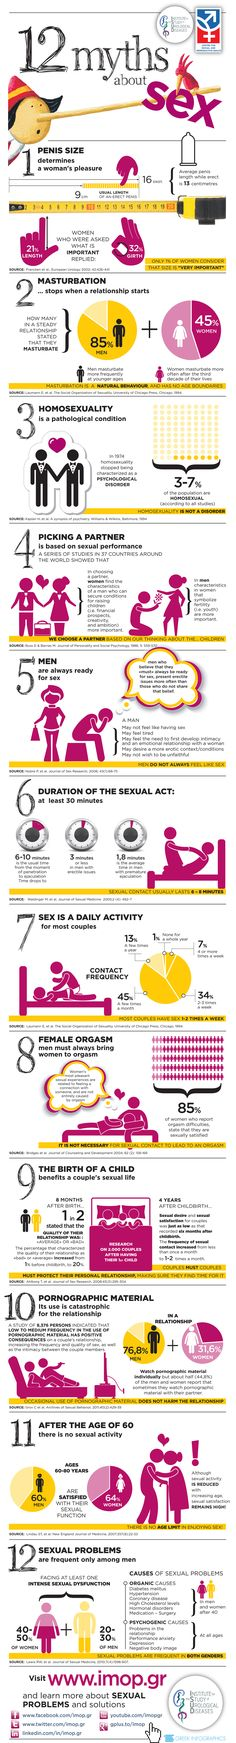 12 myths about sex! #funfacts #sexfacts www.juntoslubricnts.com